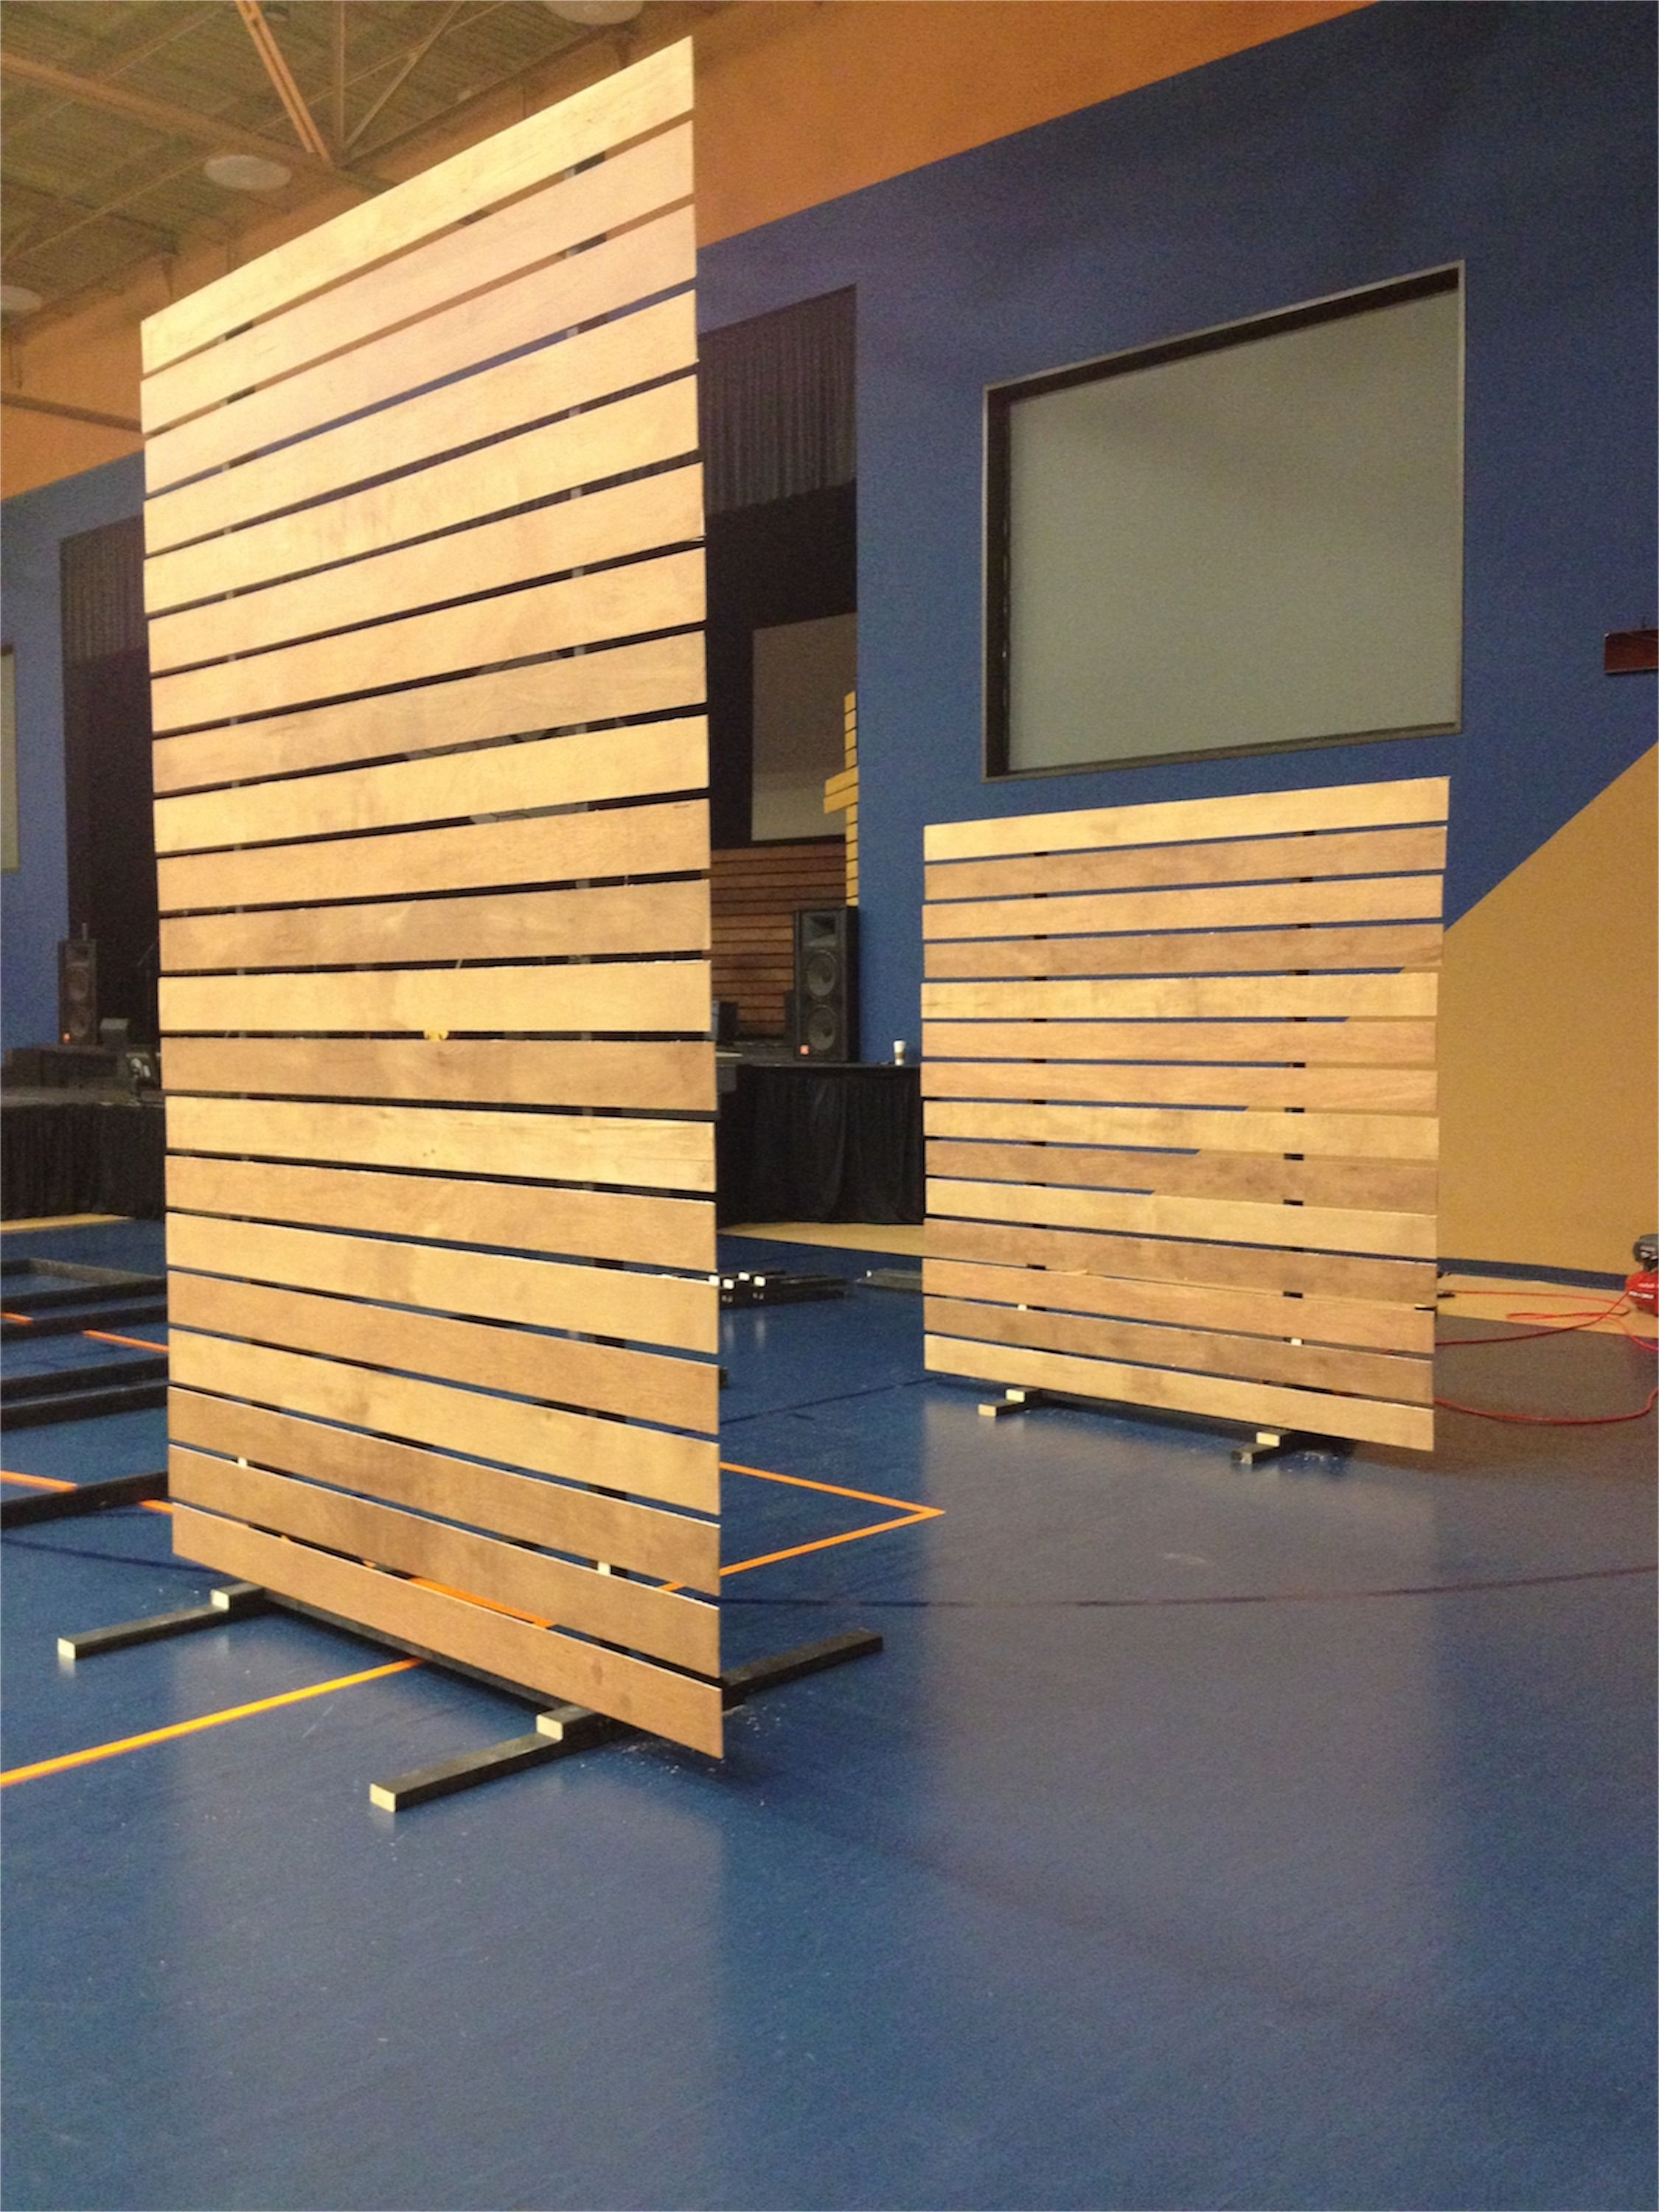 Mobile Raumteiler Ideen Create A Moveable Partition Wall On Rollers For Functional